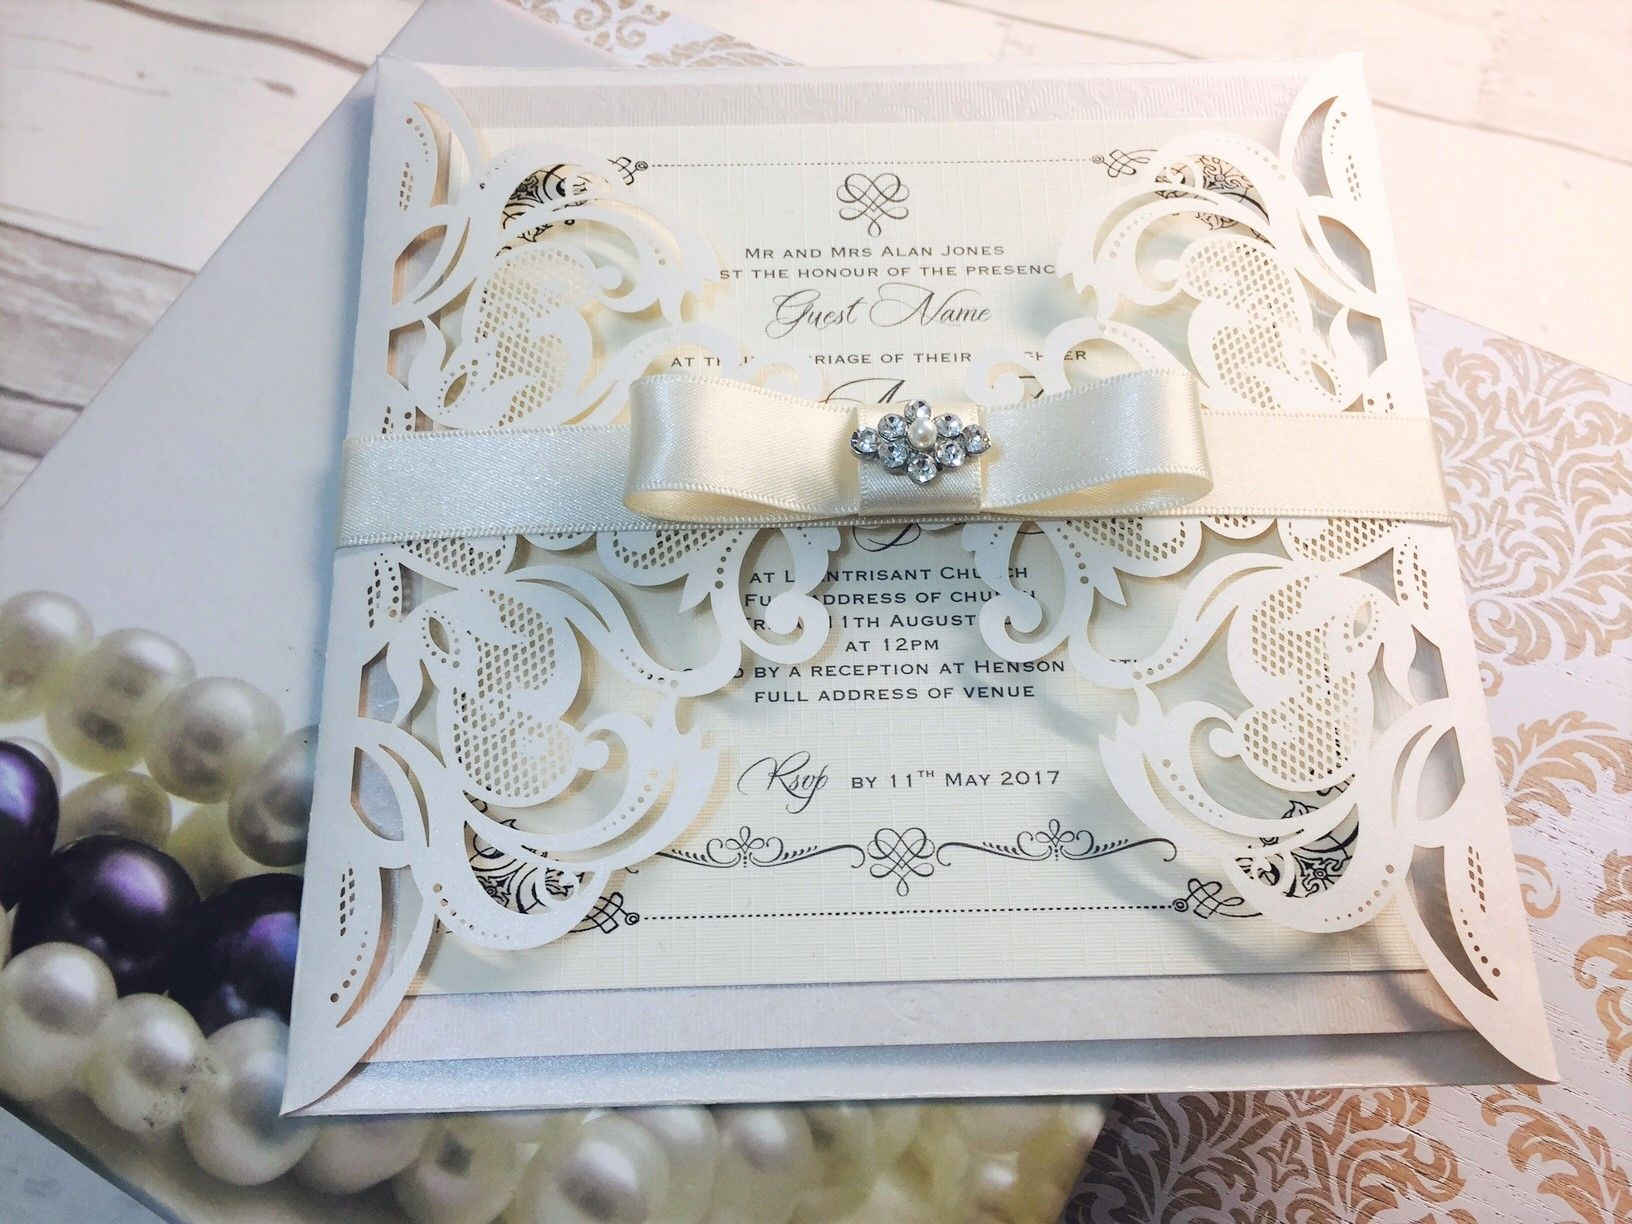 Luxury boxed wedding invitations designed with beautiful brooches and gorgeous ribbons and bows in a wide range of designs